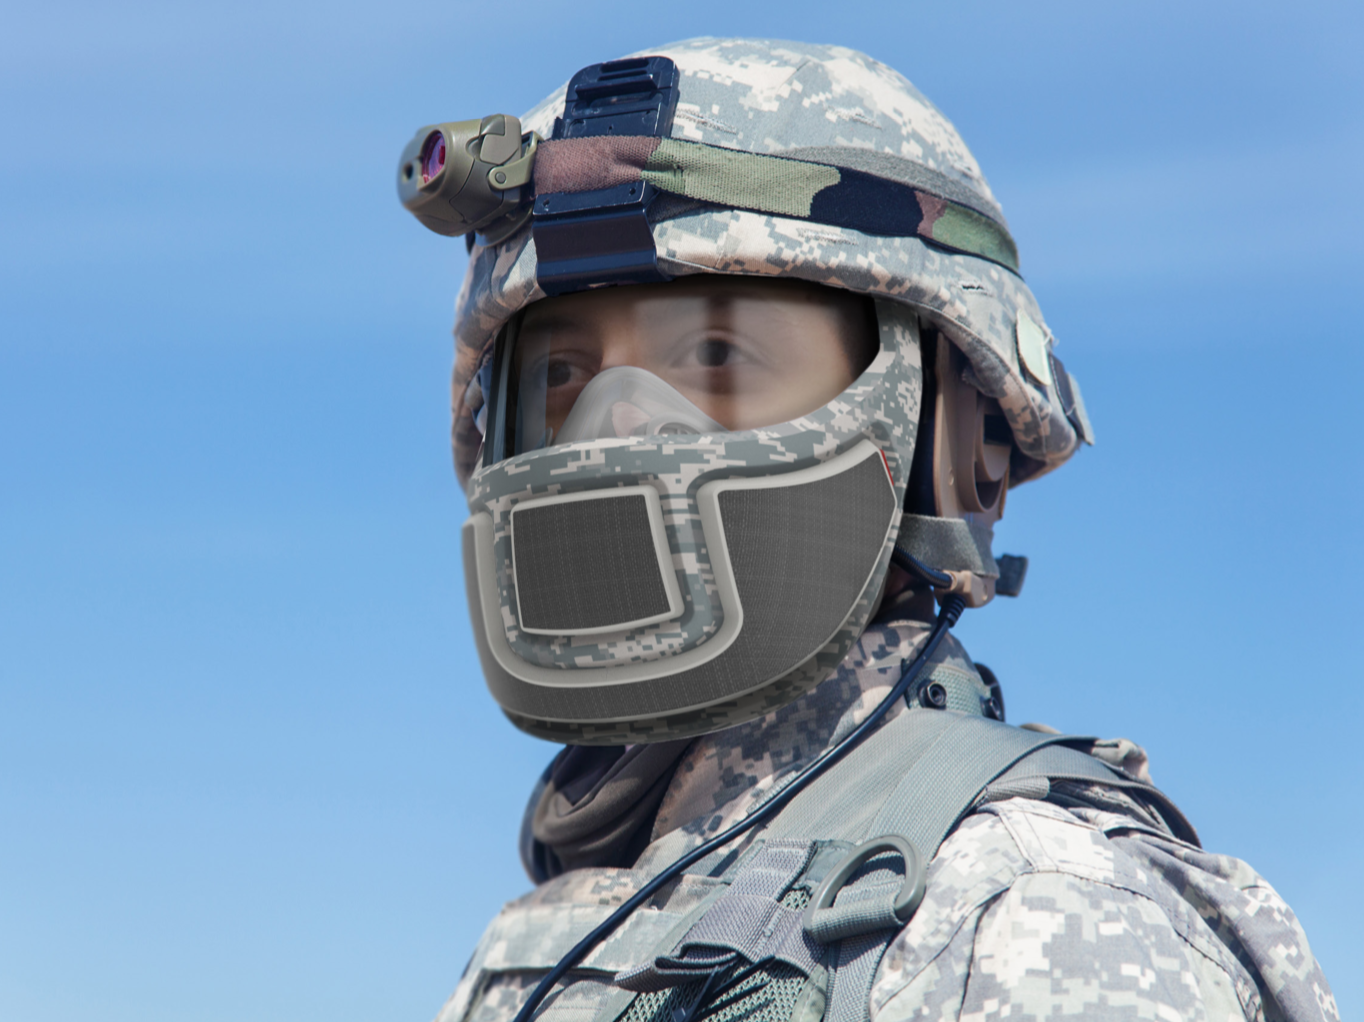 DOD/NATIONAL GUARD - There are insufficient numbers of gas masks and cartridges for use by active duty troops or National Guard during quarantine duty or protecting medical supplies. Those masks were designed for warfighting and are heavy and uncomfortable, ill suited for extended wear during an outbreak and cannot be used by DOD dependents and their children.